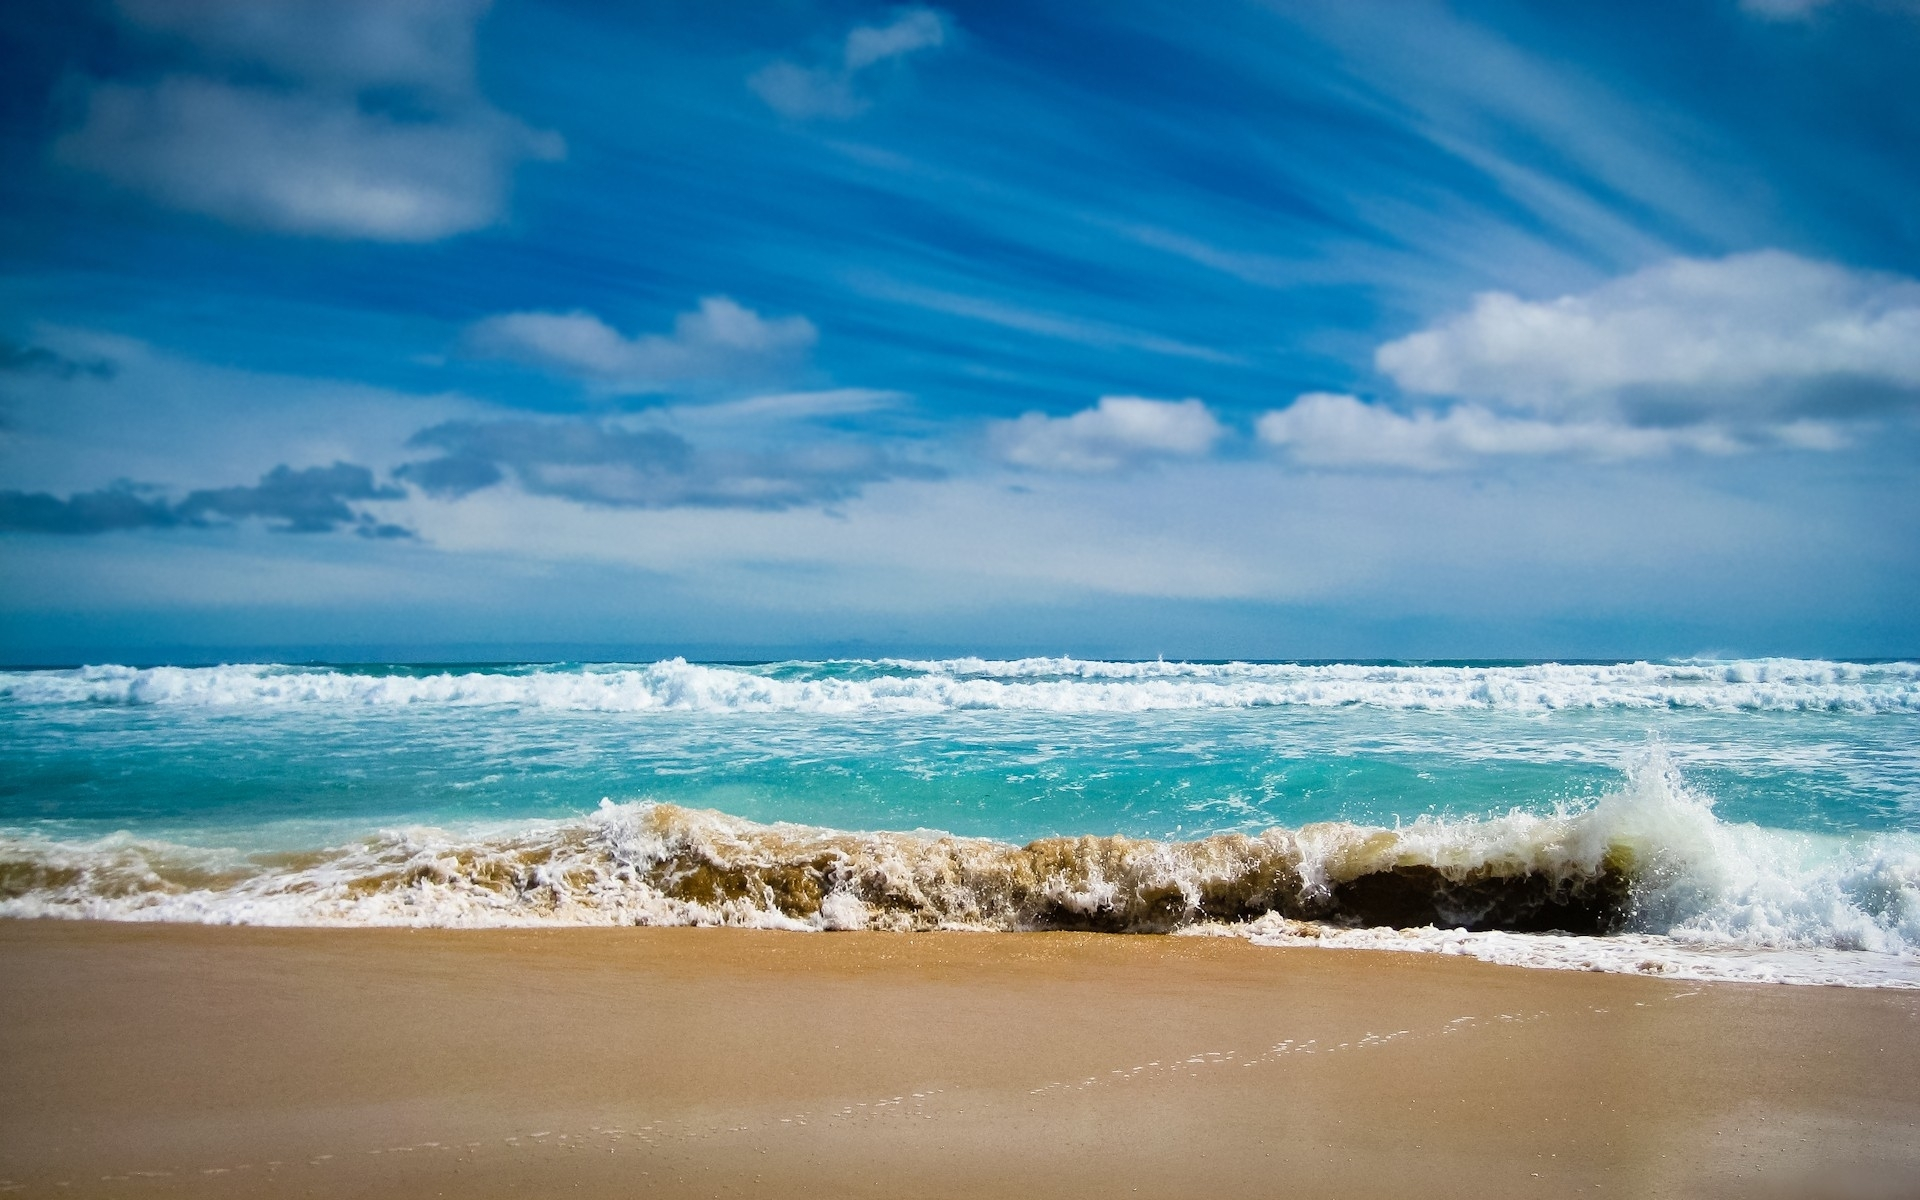 20623 download wallpaper Landscape, Sea, Clouds, Waves, Beach screensavers and pictures for free